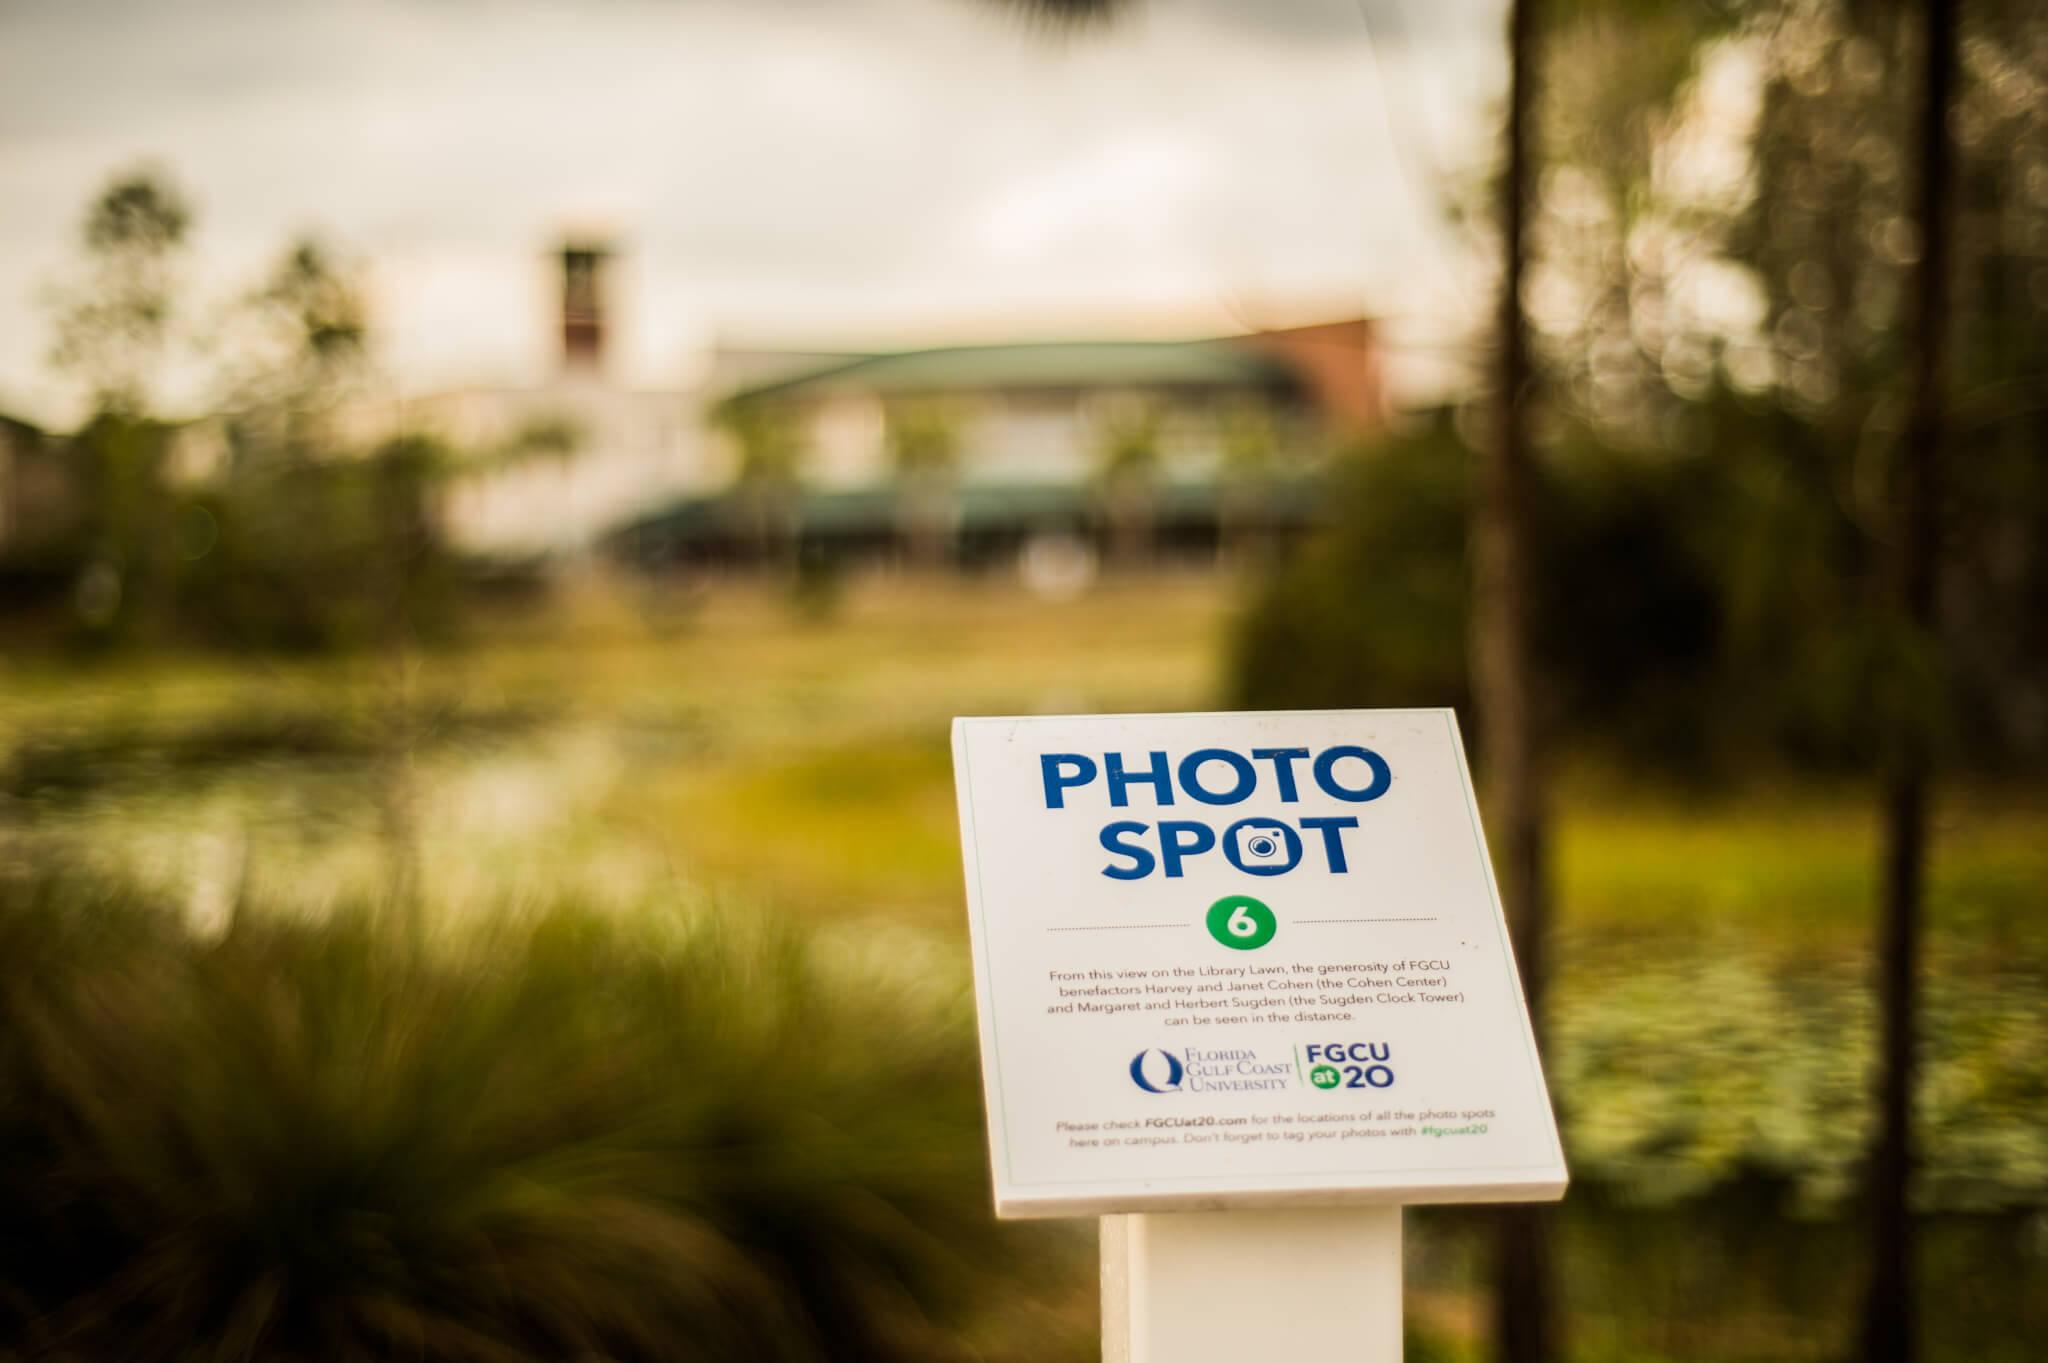 Photo stations appear on campus  in honor of 20th anniversary